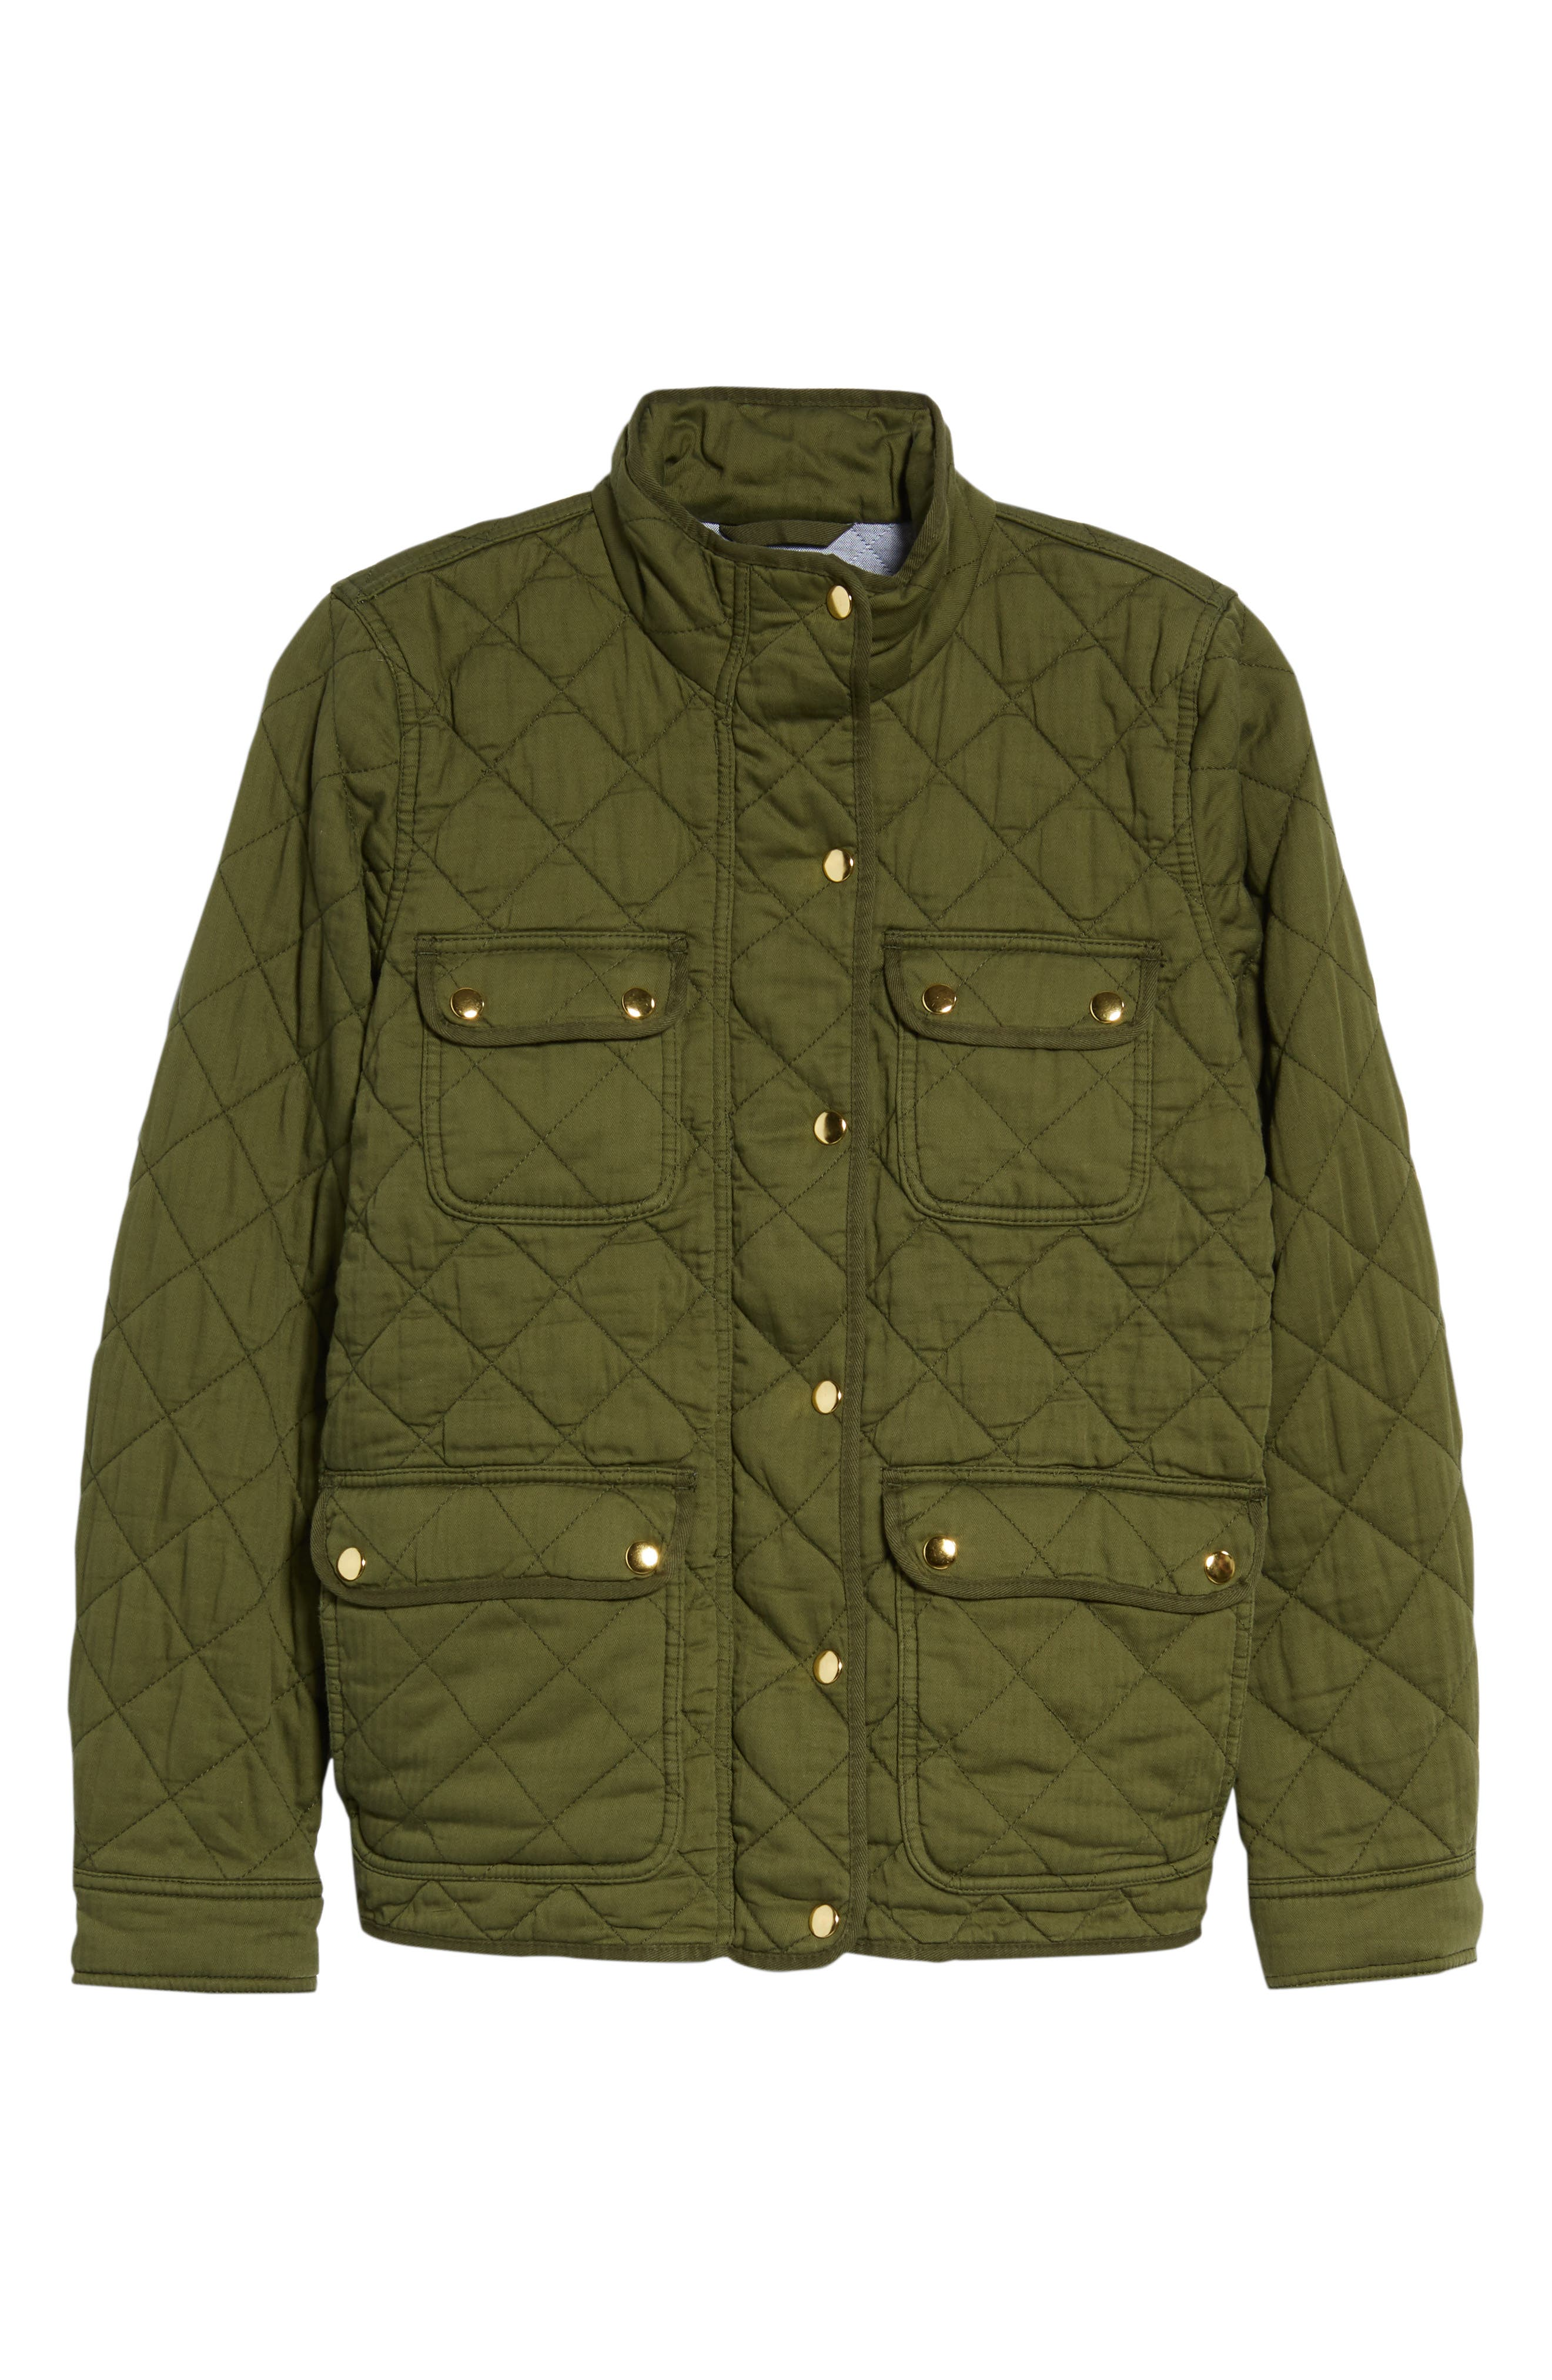 J.CREW,                             Quilted Downtown Field Jacket,                             Alternate thumbnail 5, color,                             300